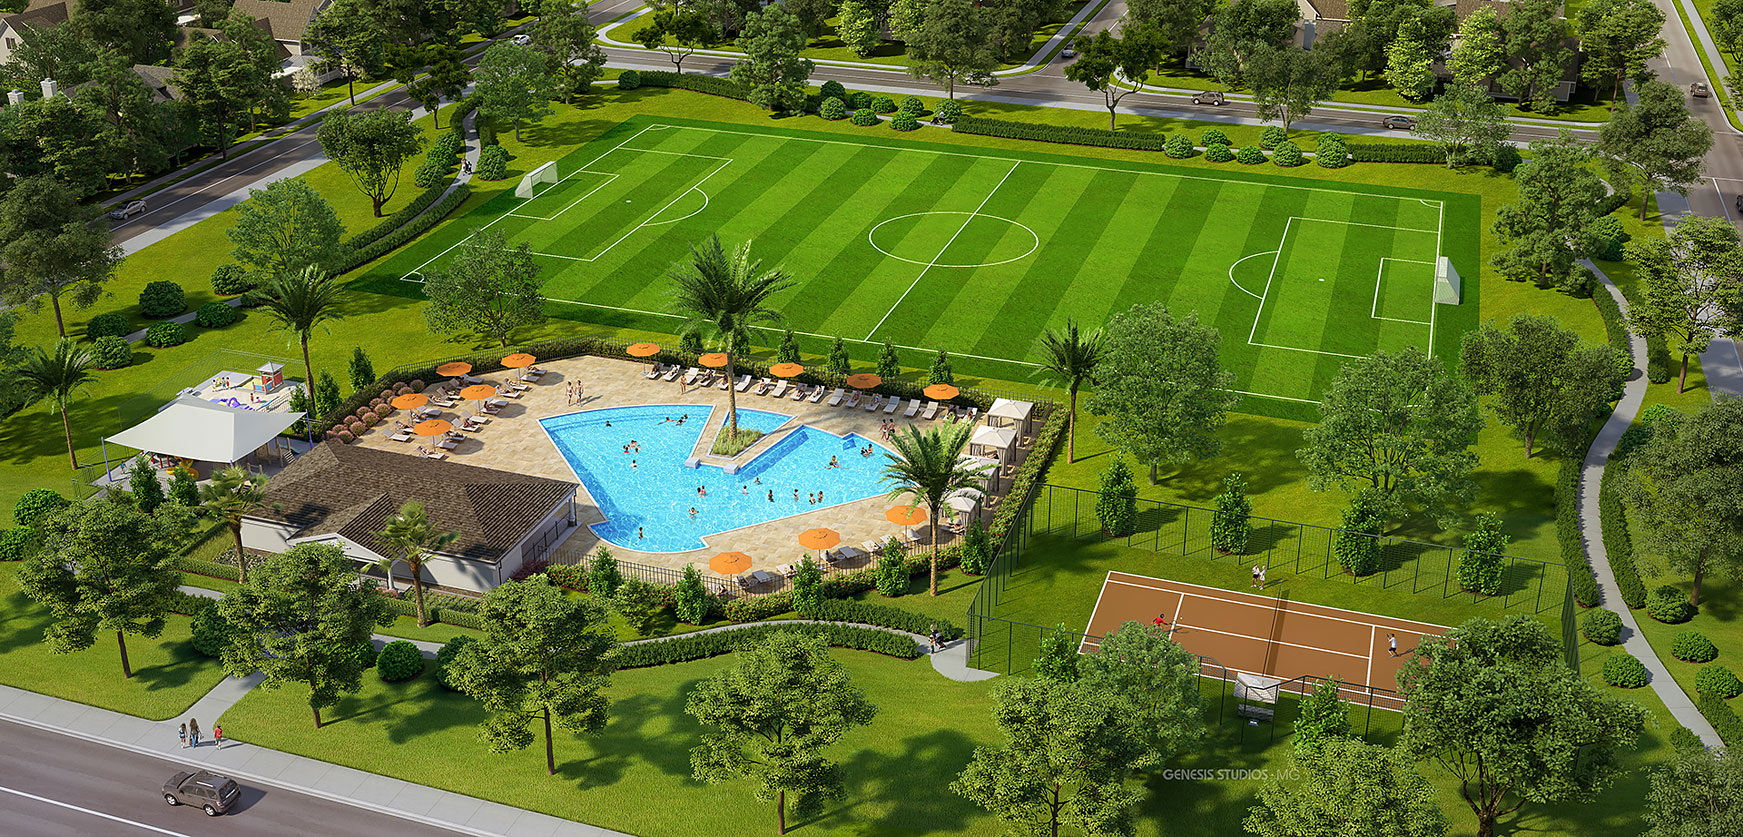 Digital Photorealistic Architectural Rendering of Laviance Amenities Aerial for Verlander